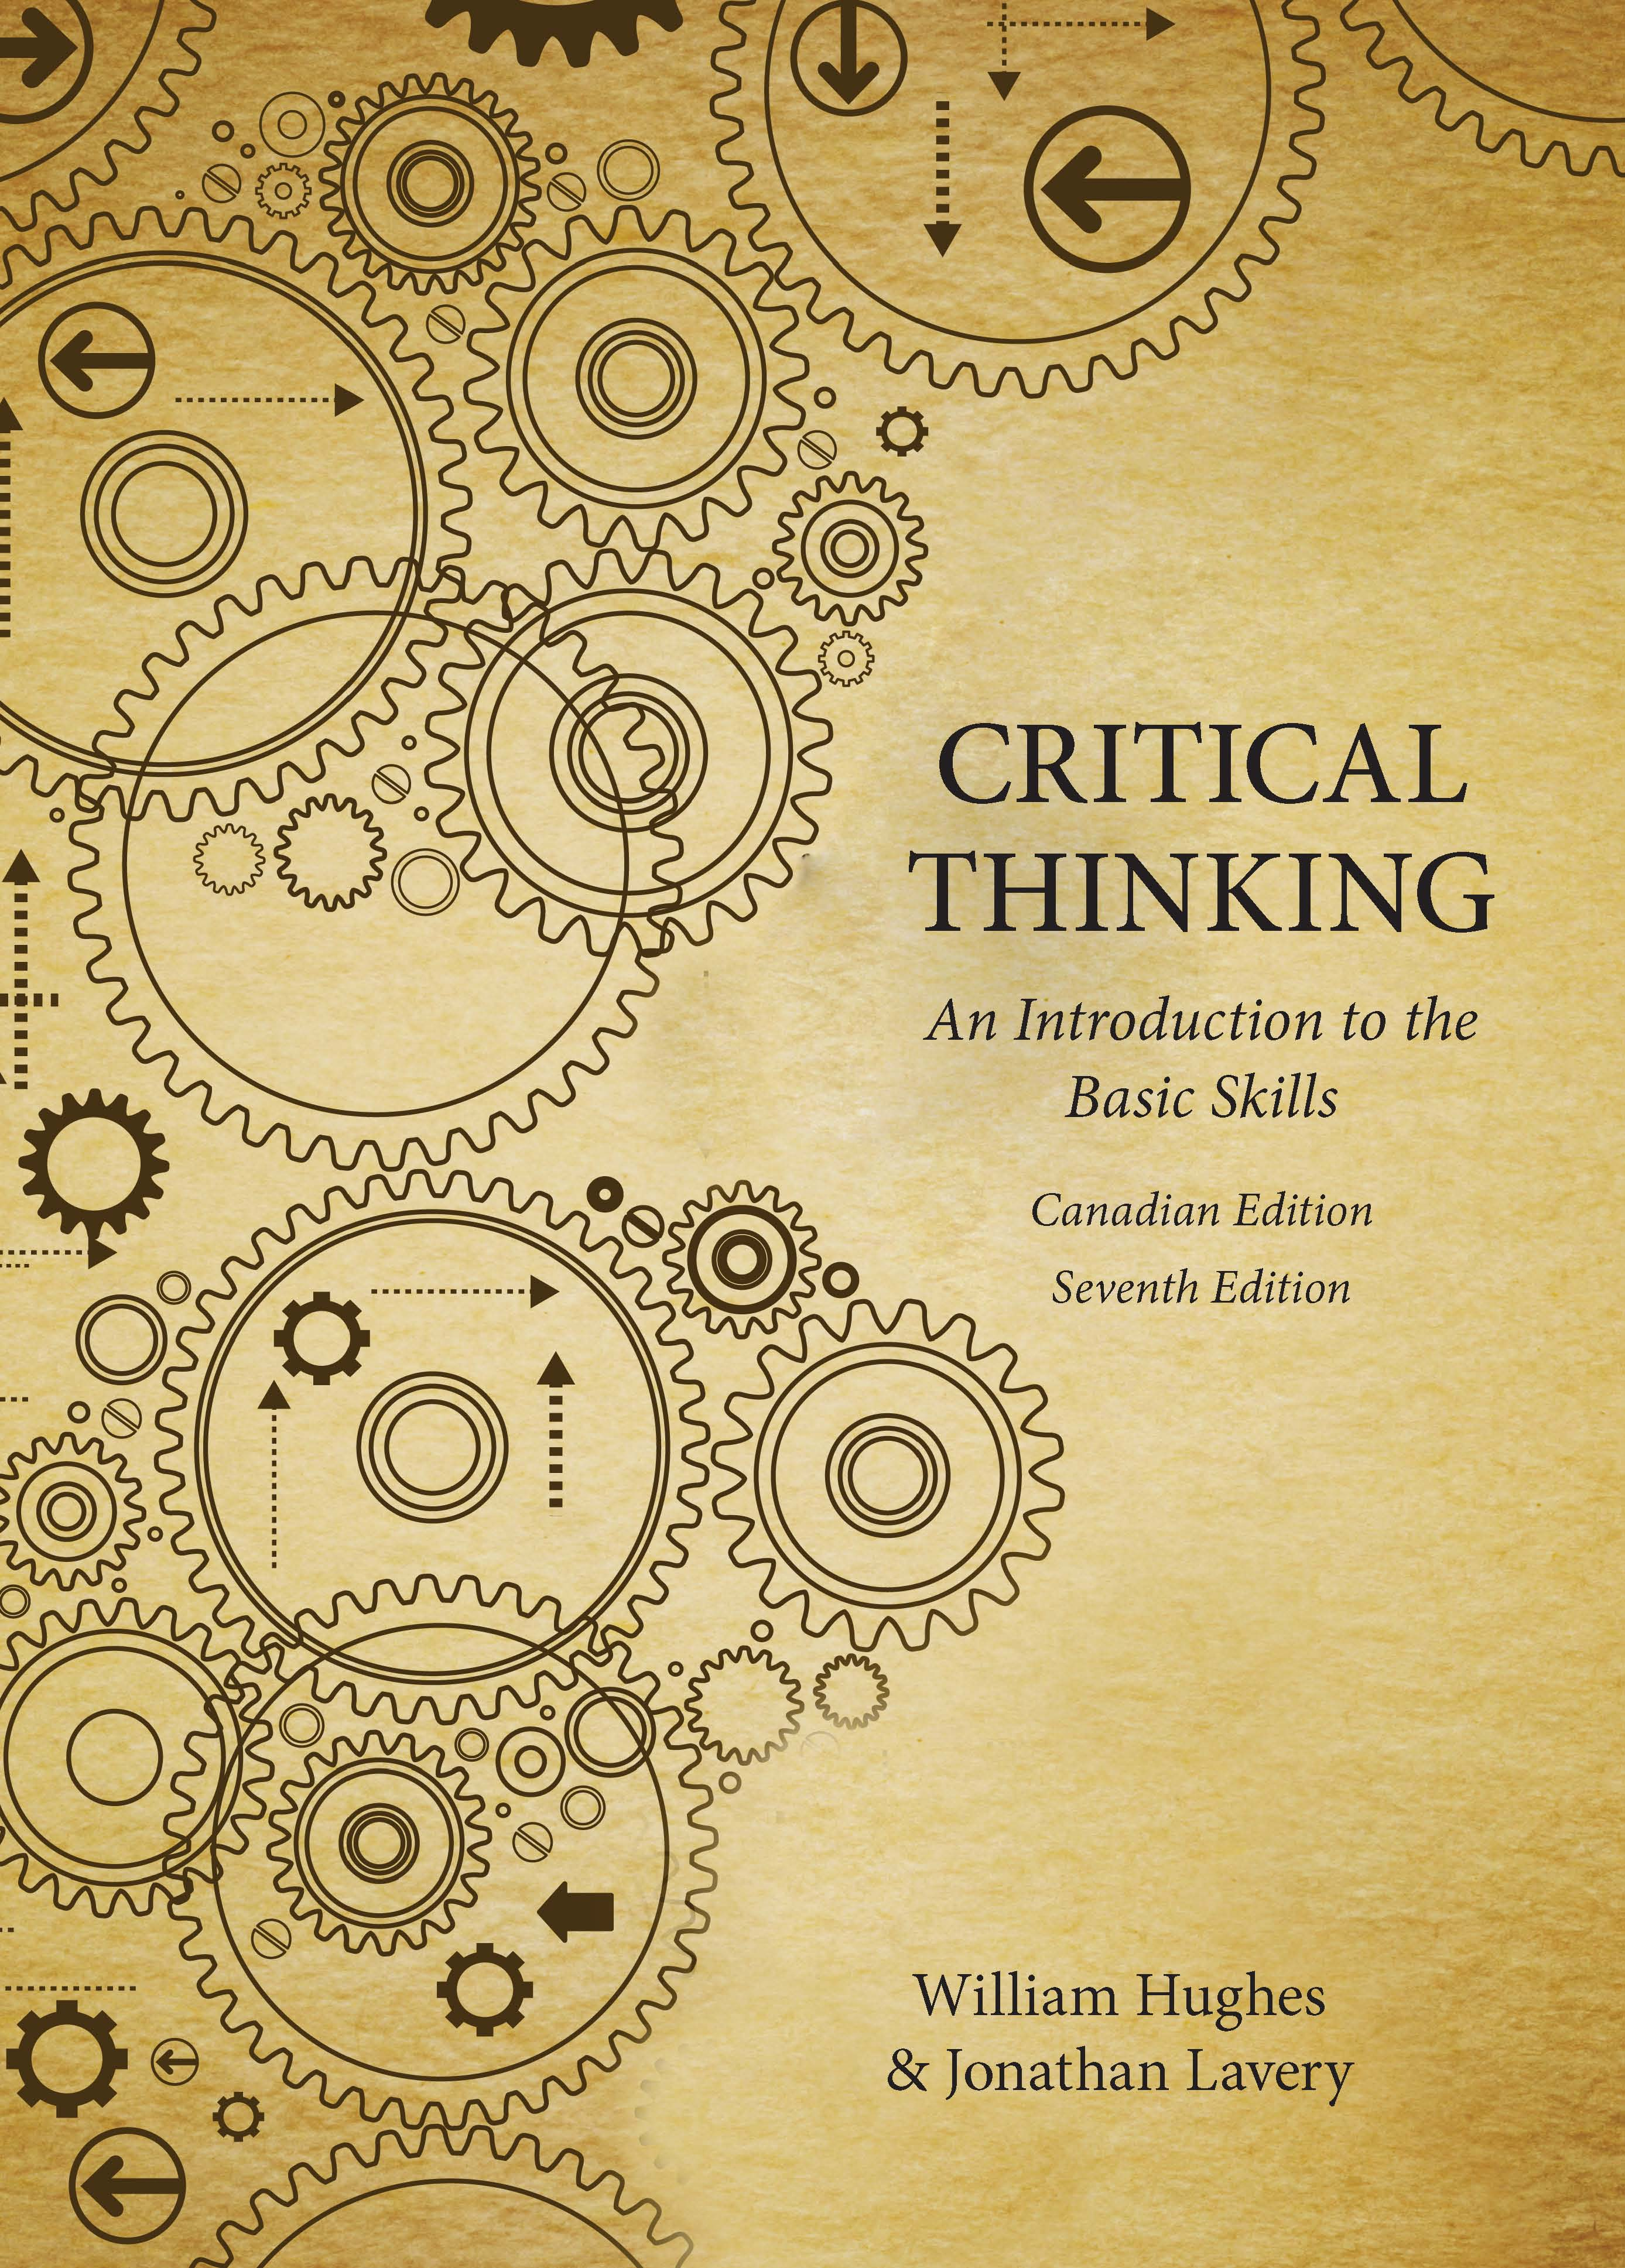 think critical thinking and logic skills for everyday life quiz 6 exercises to strengthen your critical thinking skills 6 practical exercises to strengthen your critical by examining your assumptions and logic and.